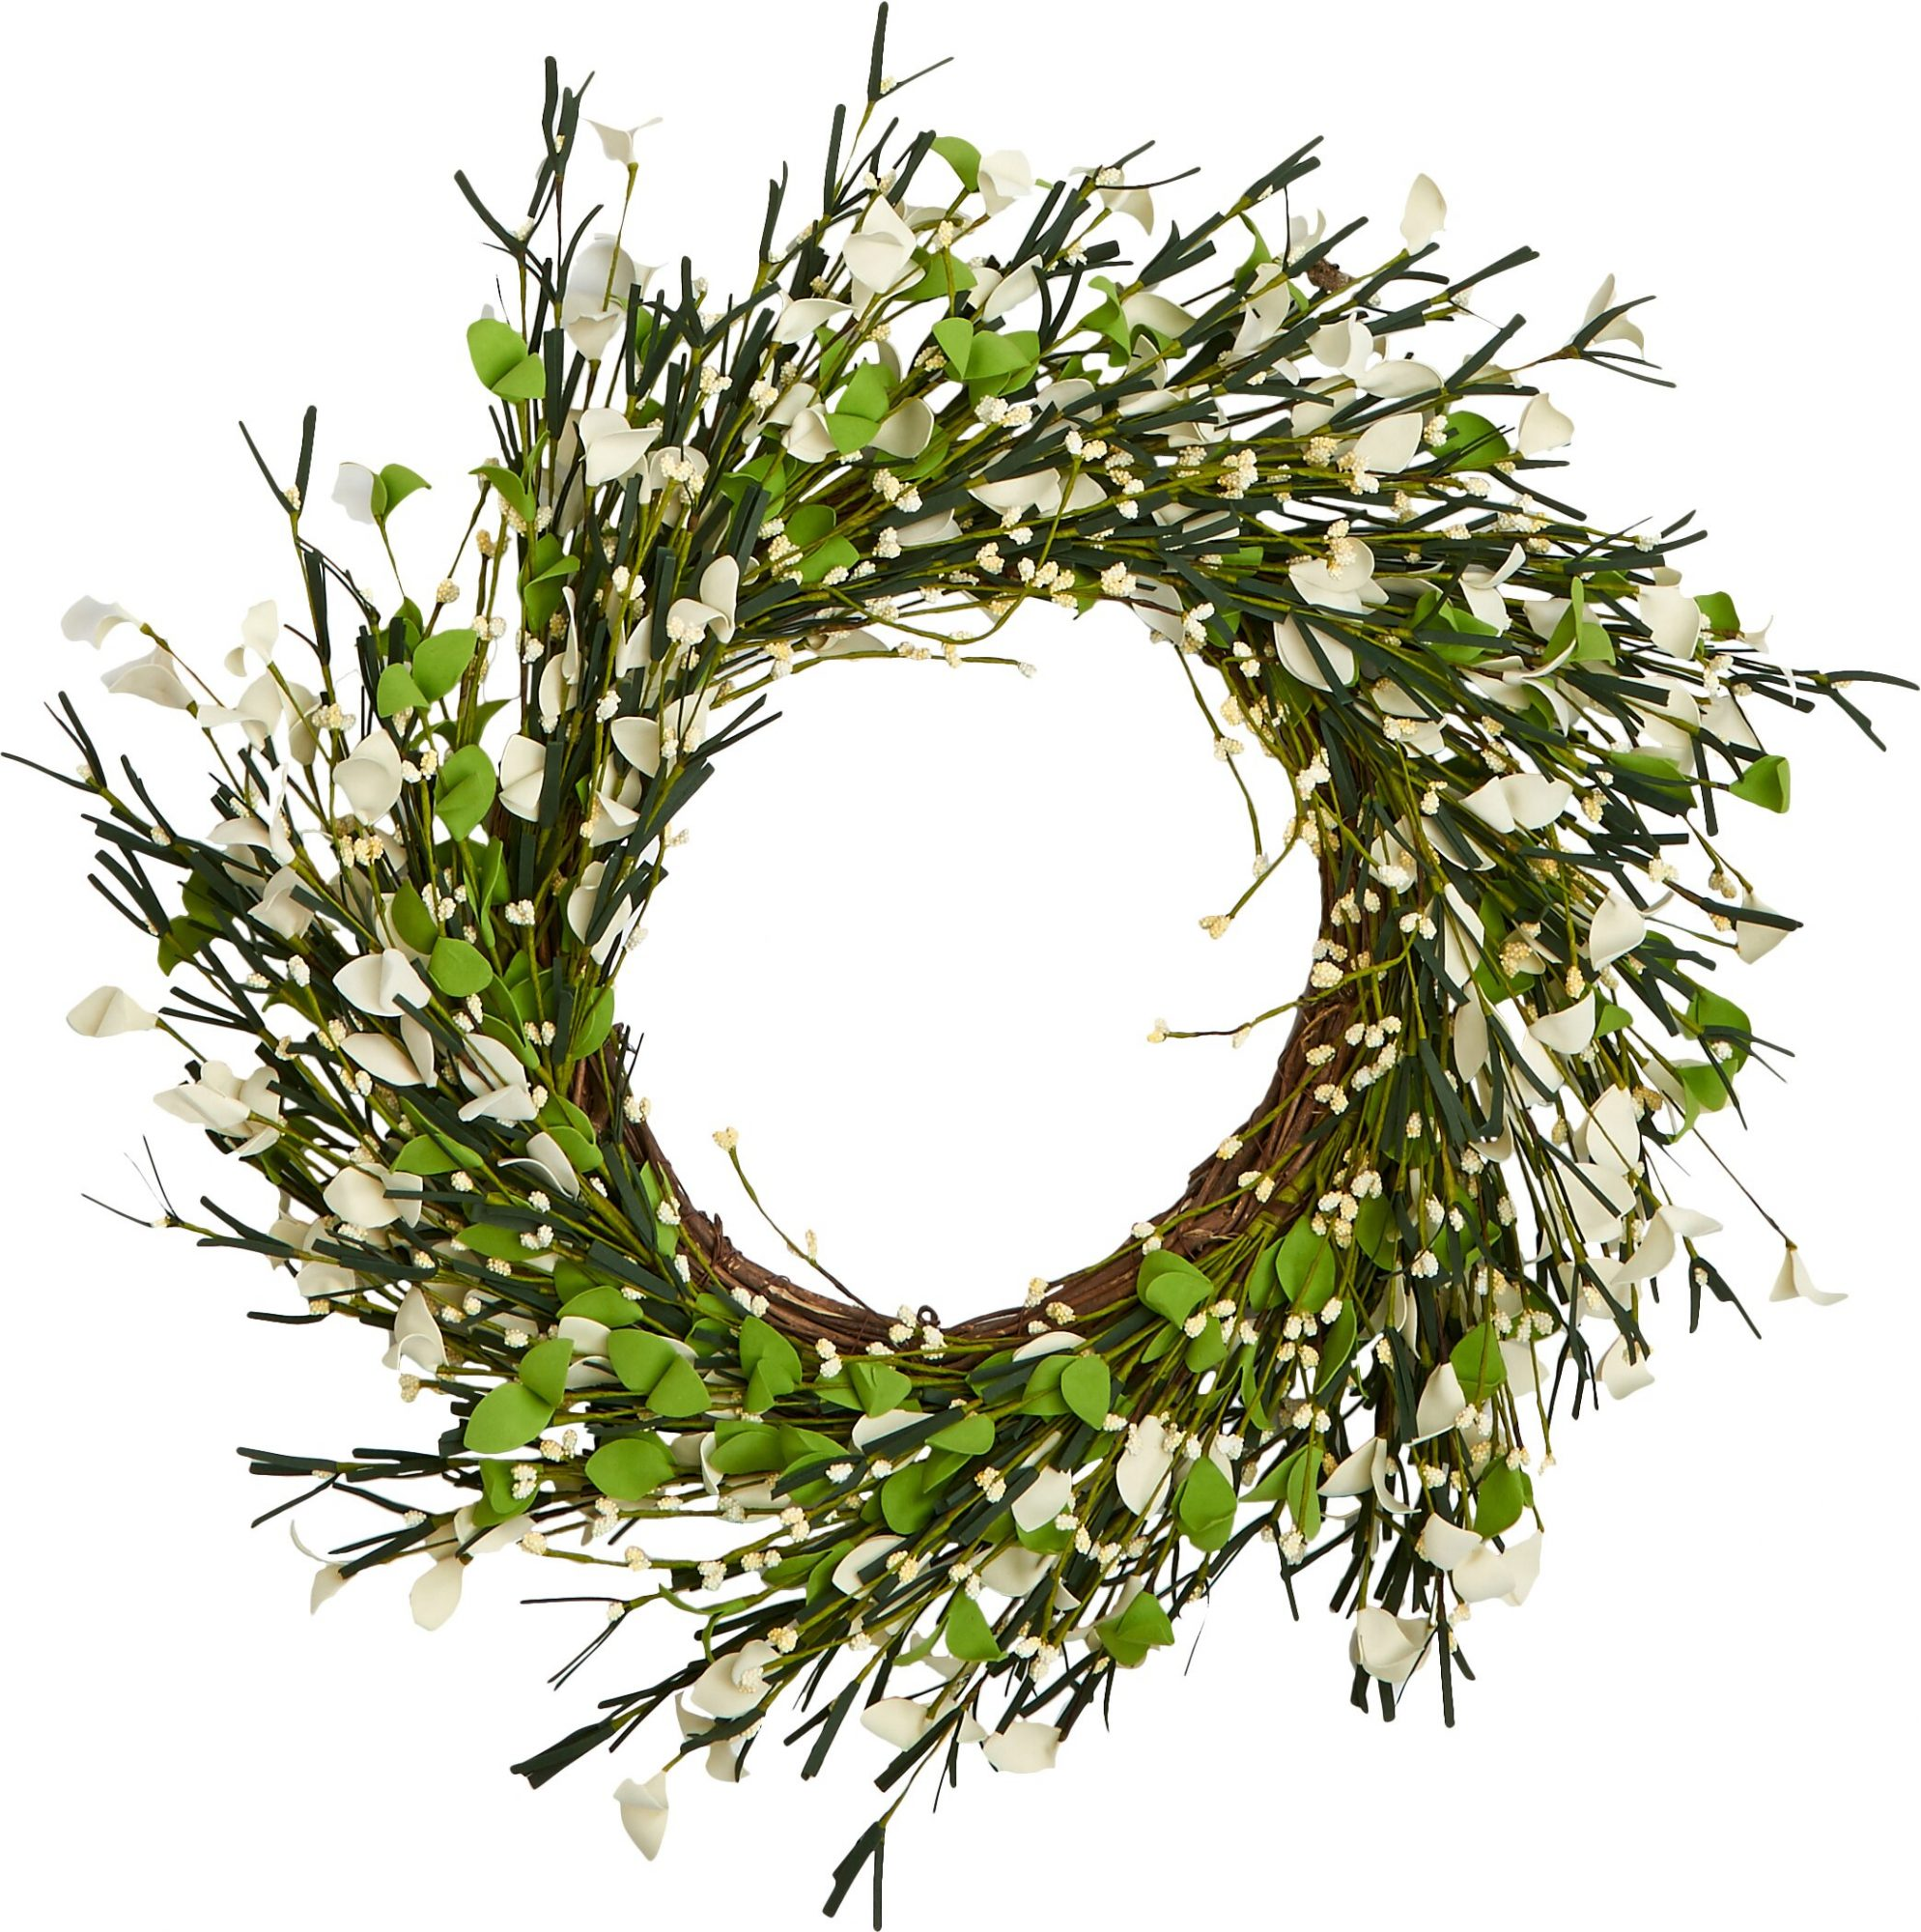 BUY IT: $47; wayfair.com Play up farmhouse charm with a simple green-and-white wreath that can hang on the front door all season long.